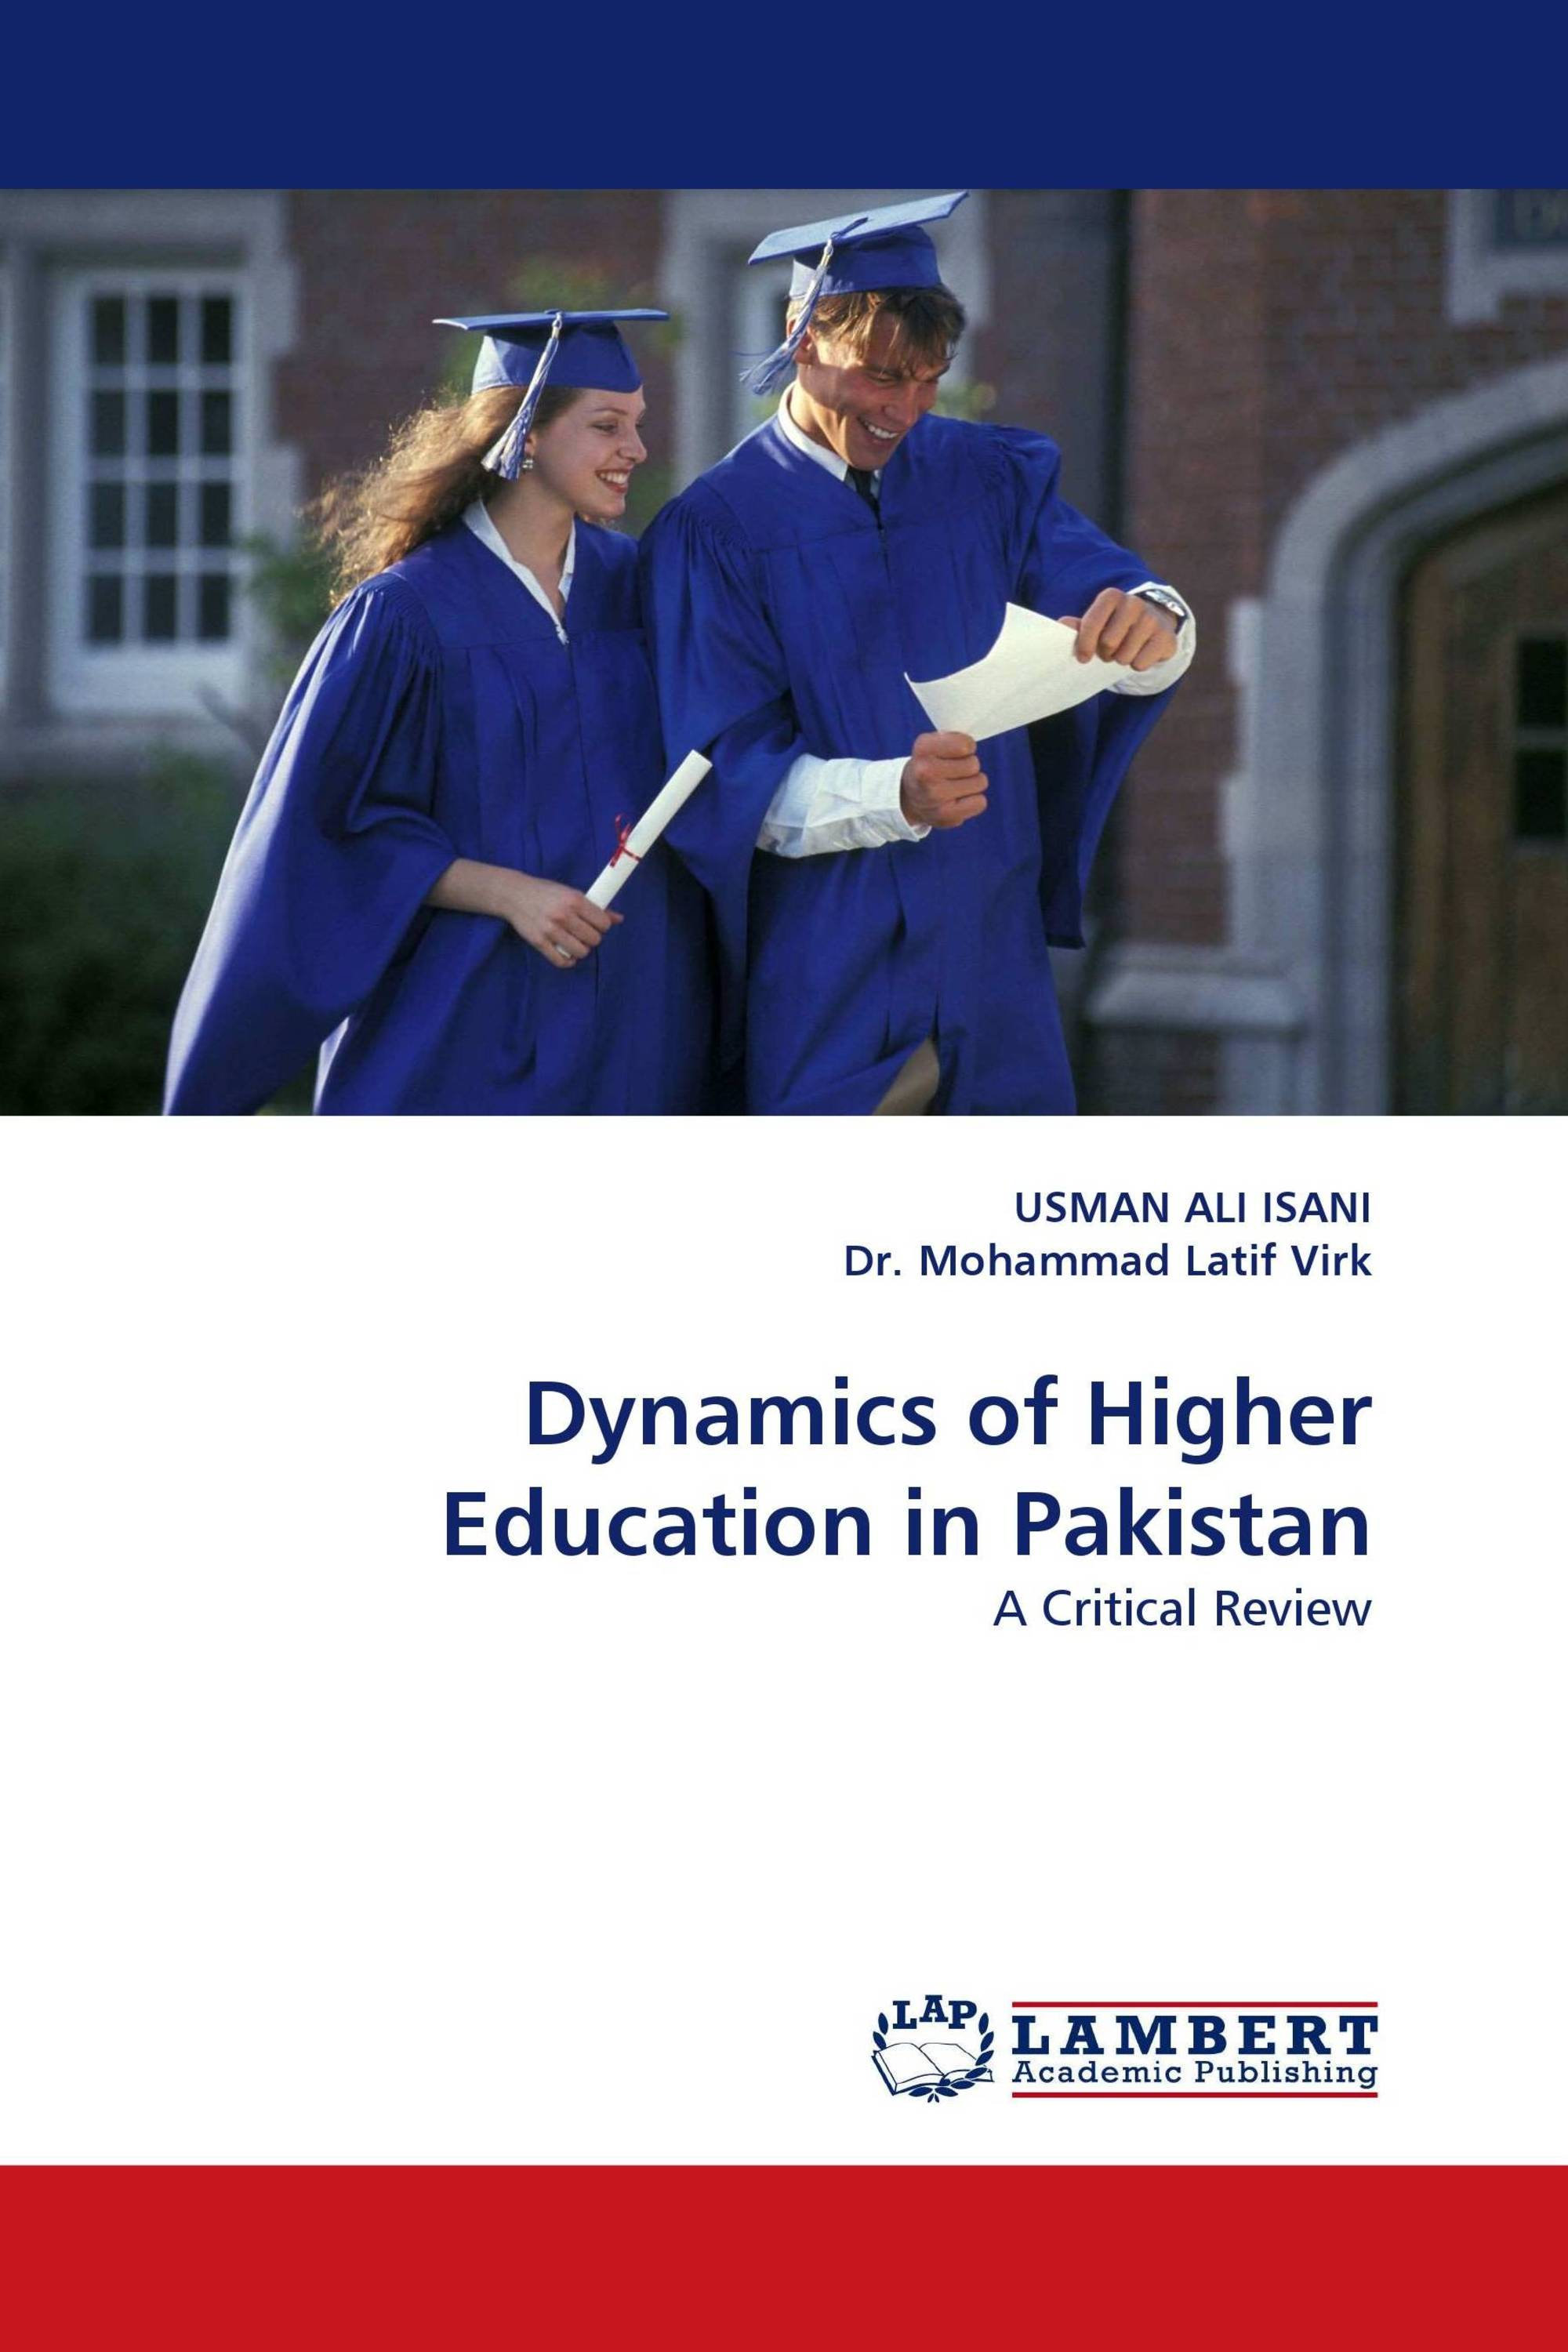 literature review on education in pakistan